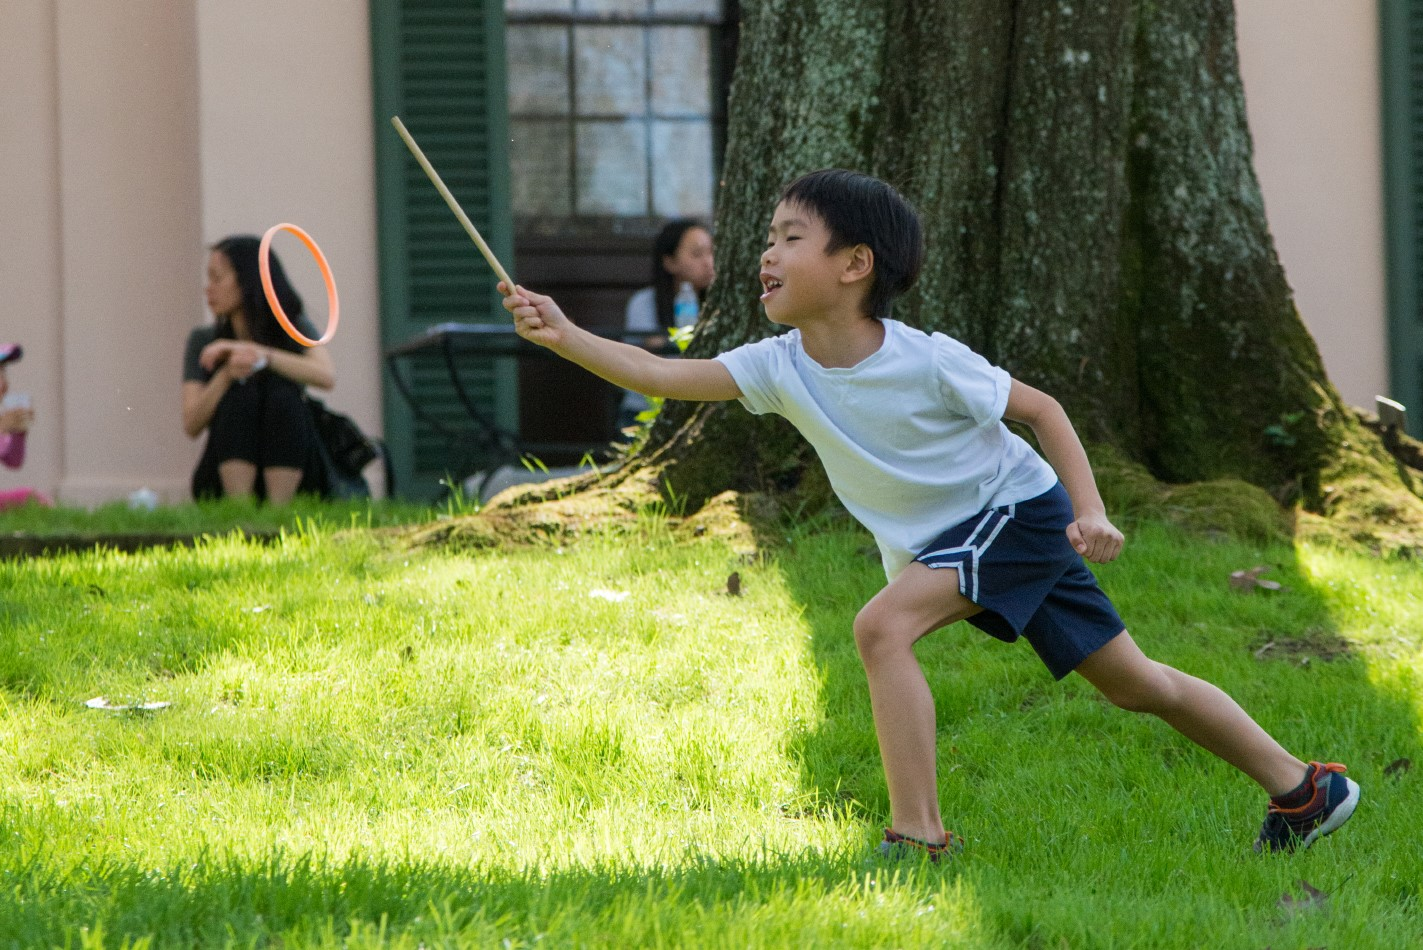 Bayou Bend Family Day - child playing hoop game